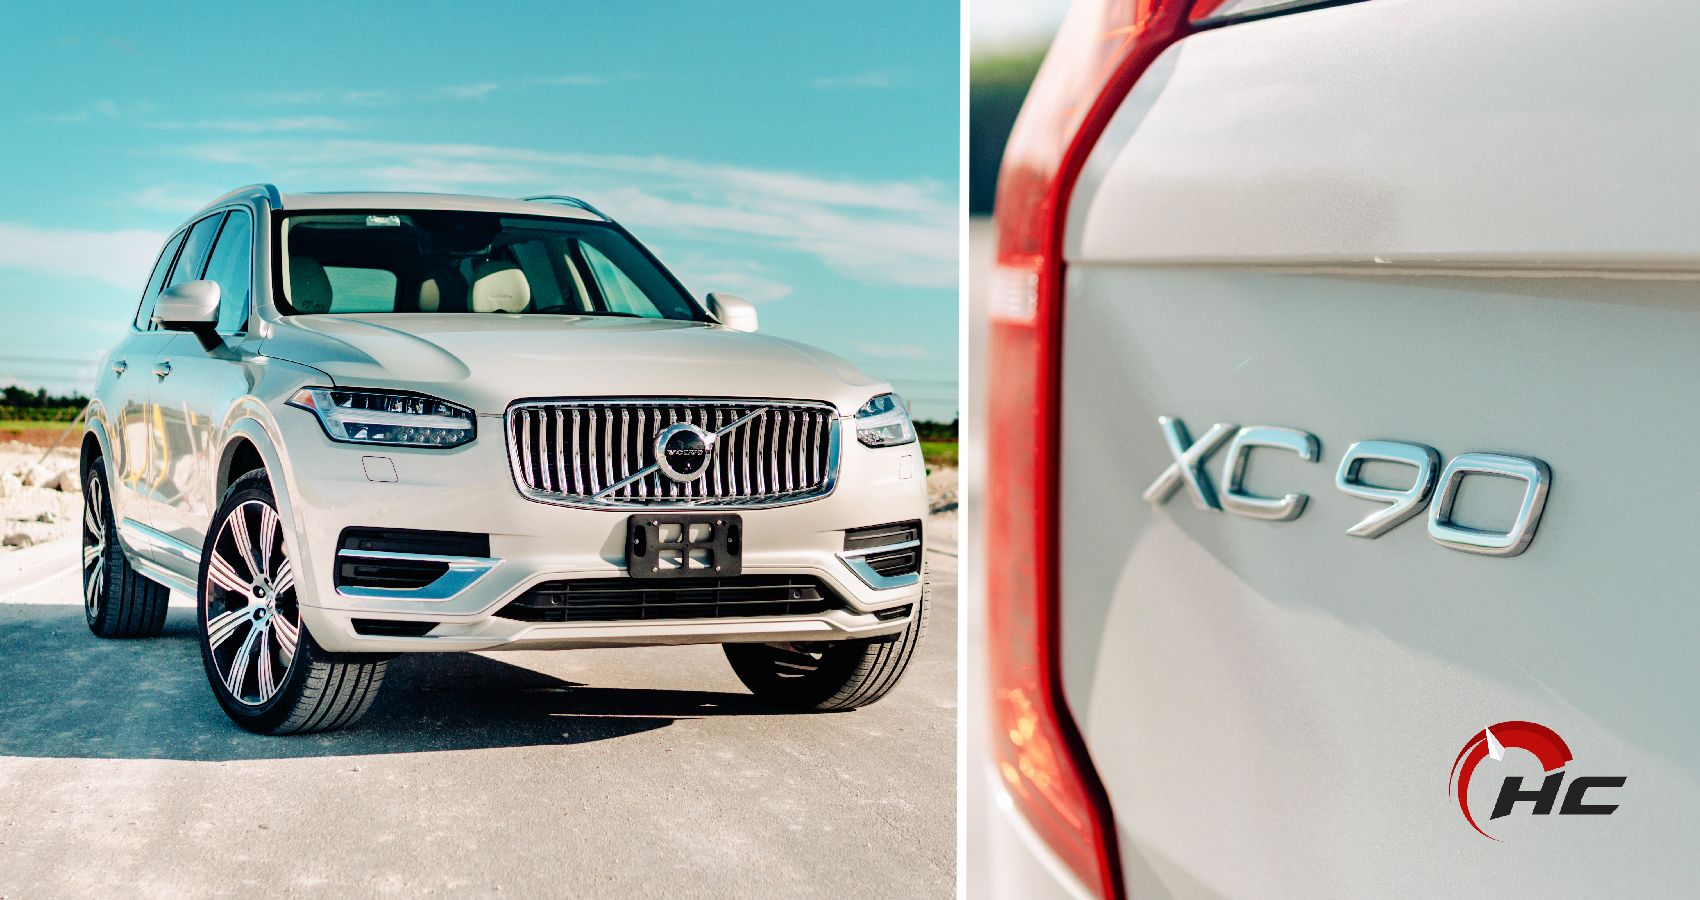 2020 Volvo XC90 T8 eAWD Inscription Review: Subtle, Stylish And Safe